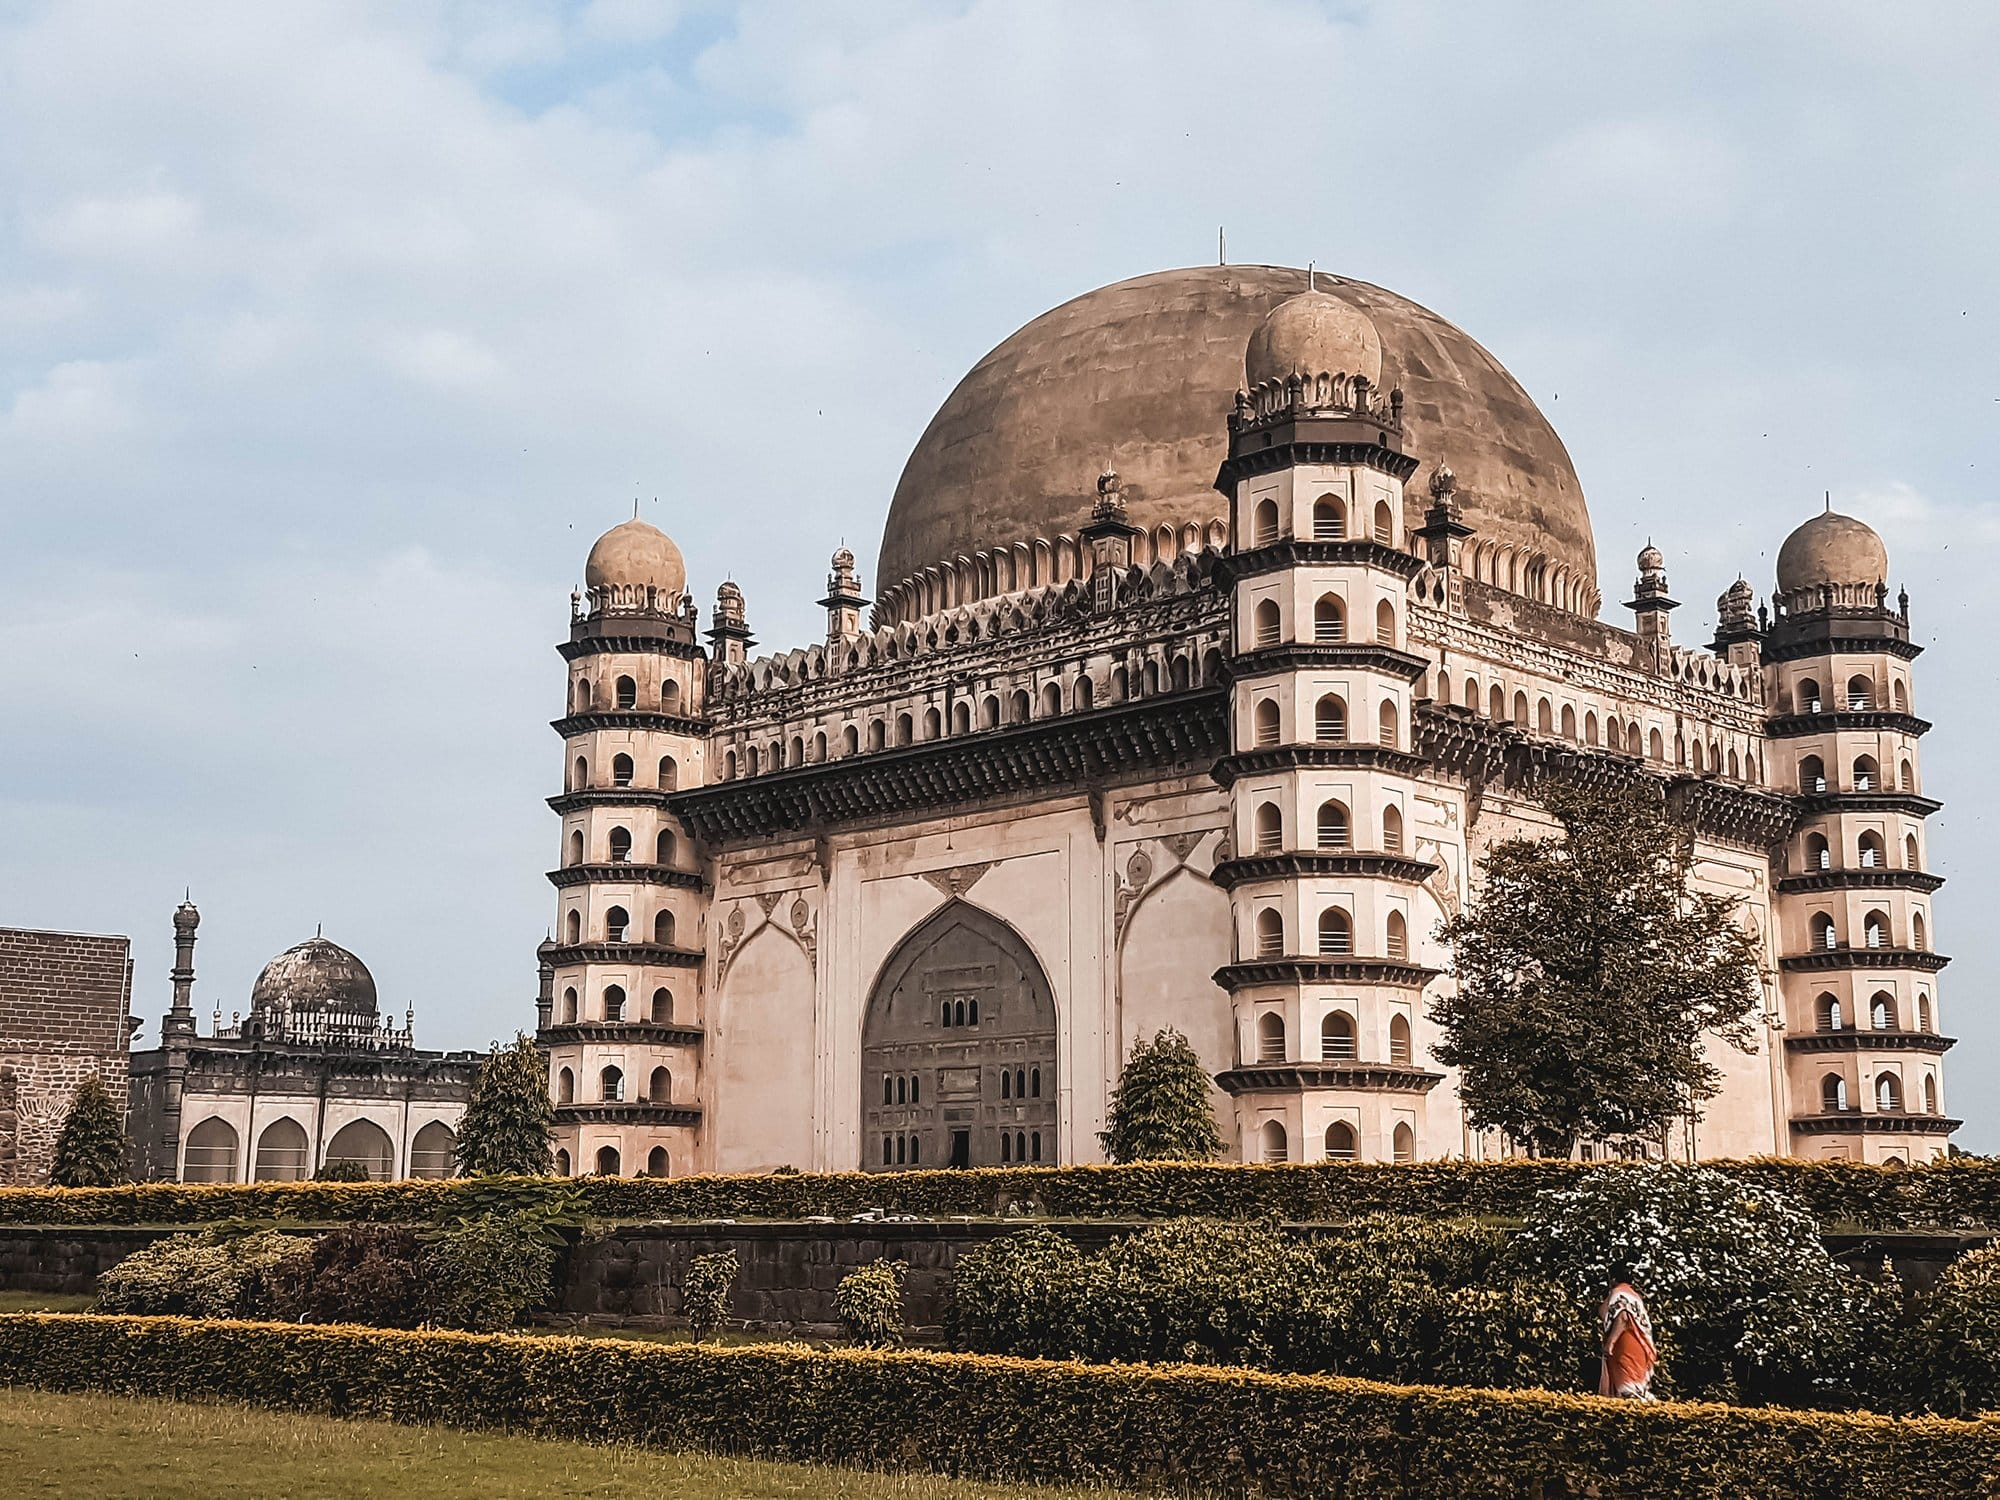 Gol Gumbaz in Bijapur is an example of Islamic architecture in the Deccan plateau in Karnataka